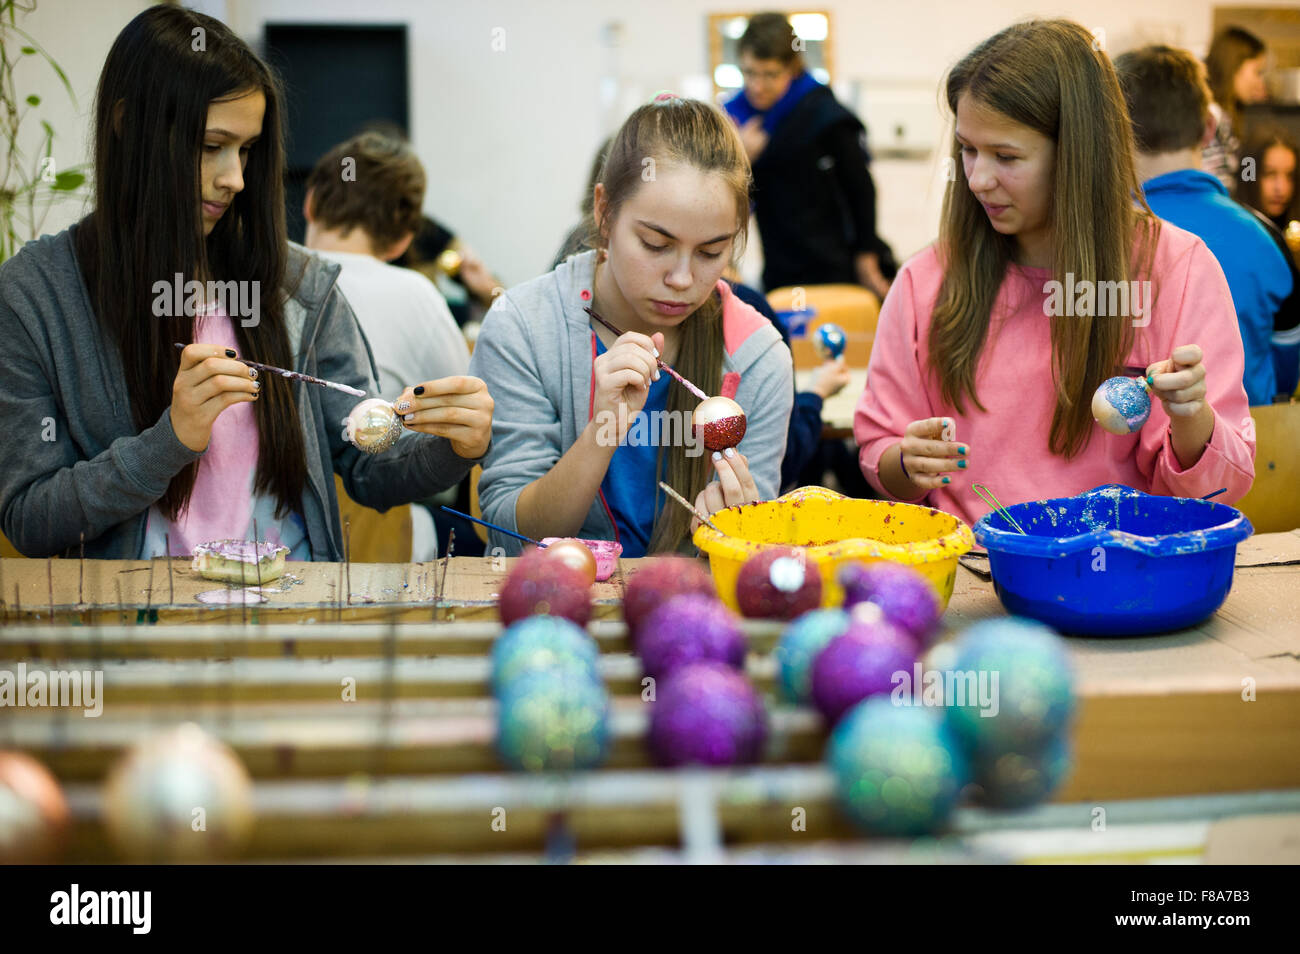 Piotrkow Trybunalski, Poland. 7th December, 2015. Visitors of the Christmas ball manufacturer decorate glass balls - Stock Image